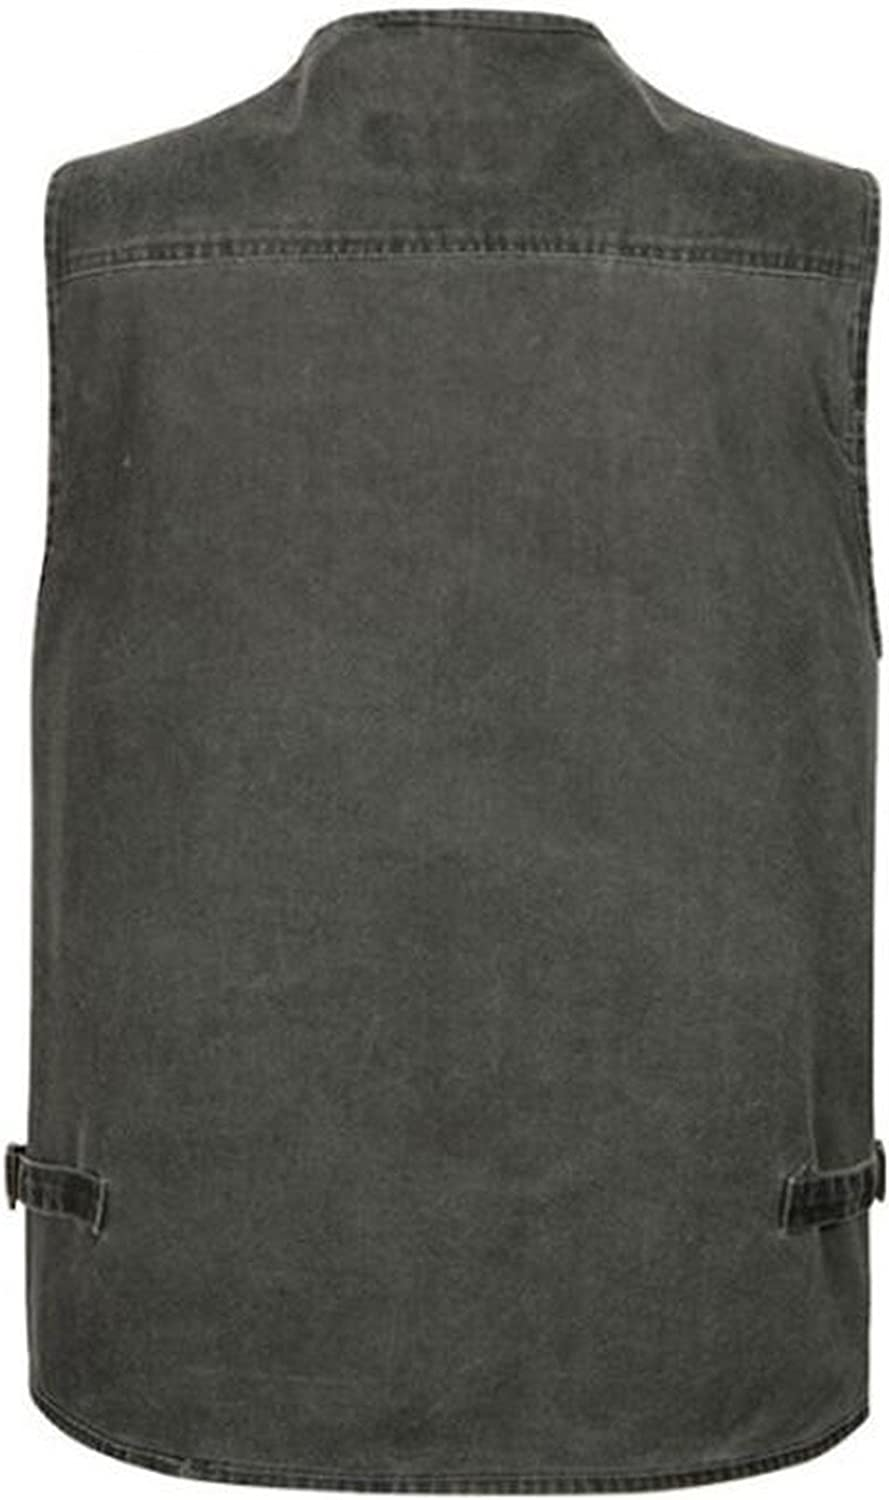 JJZXX Mens Multi-Pocket Reporters Photography Vest Concealed Carry Waistcoat Sleeveless Jacket Casual Gilet